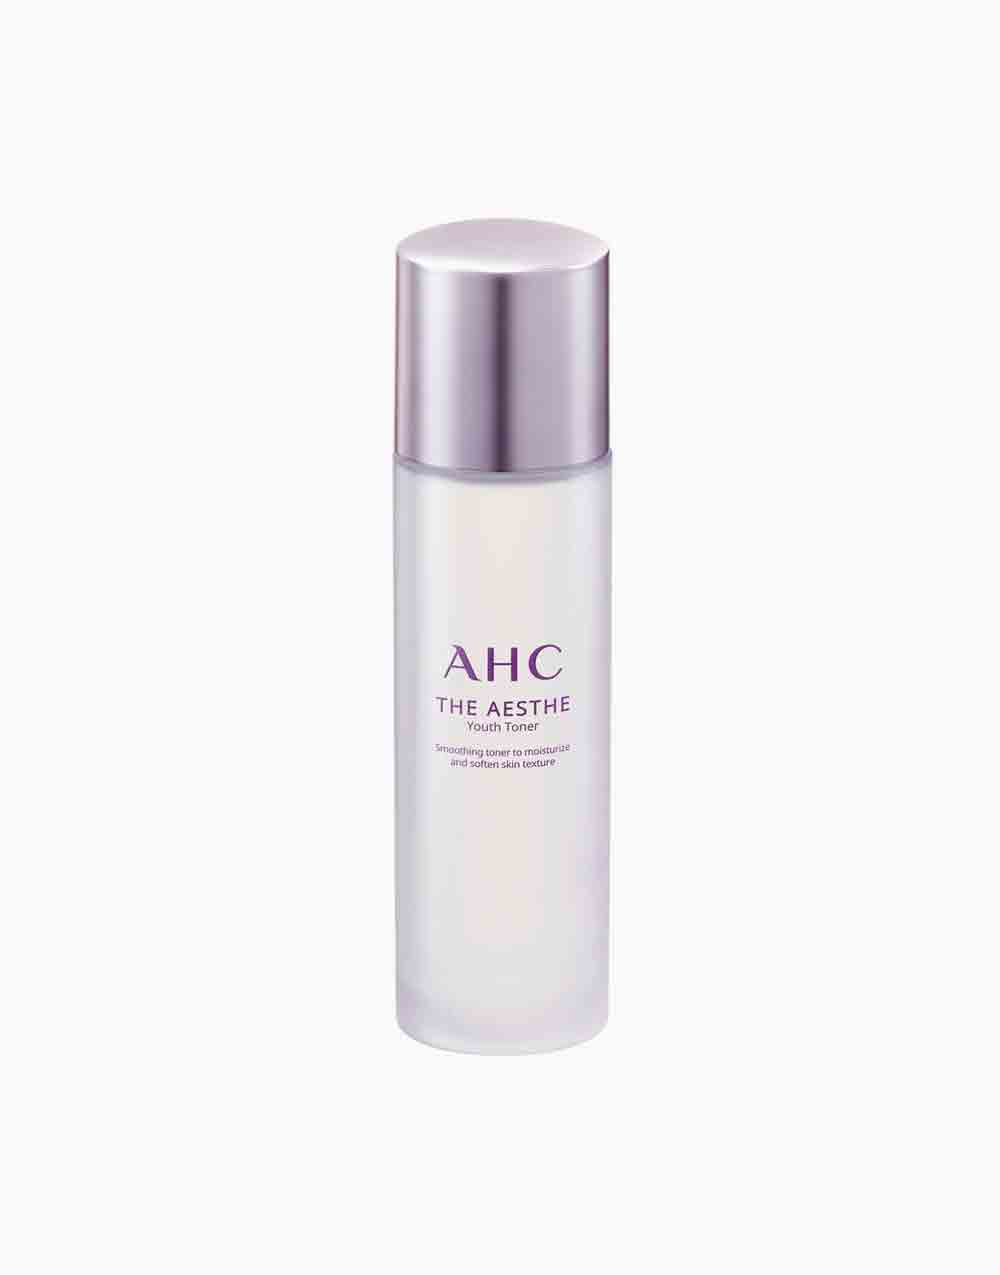 The Aesthe Youth Toner (150ml) by AHC